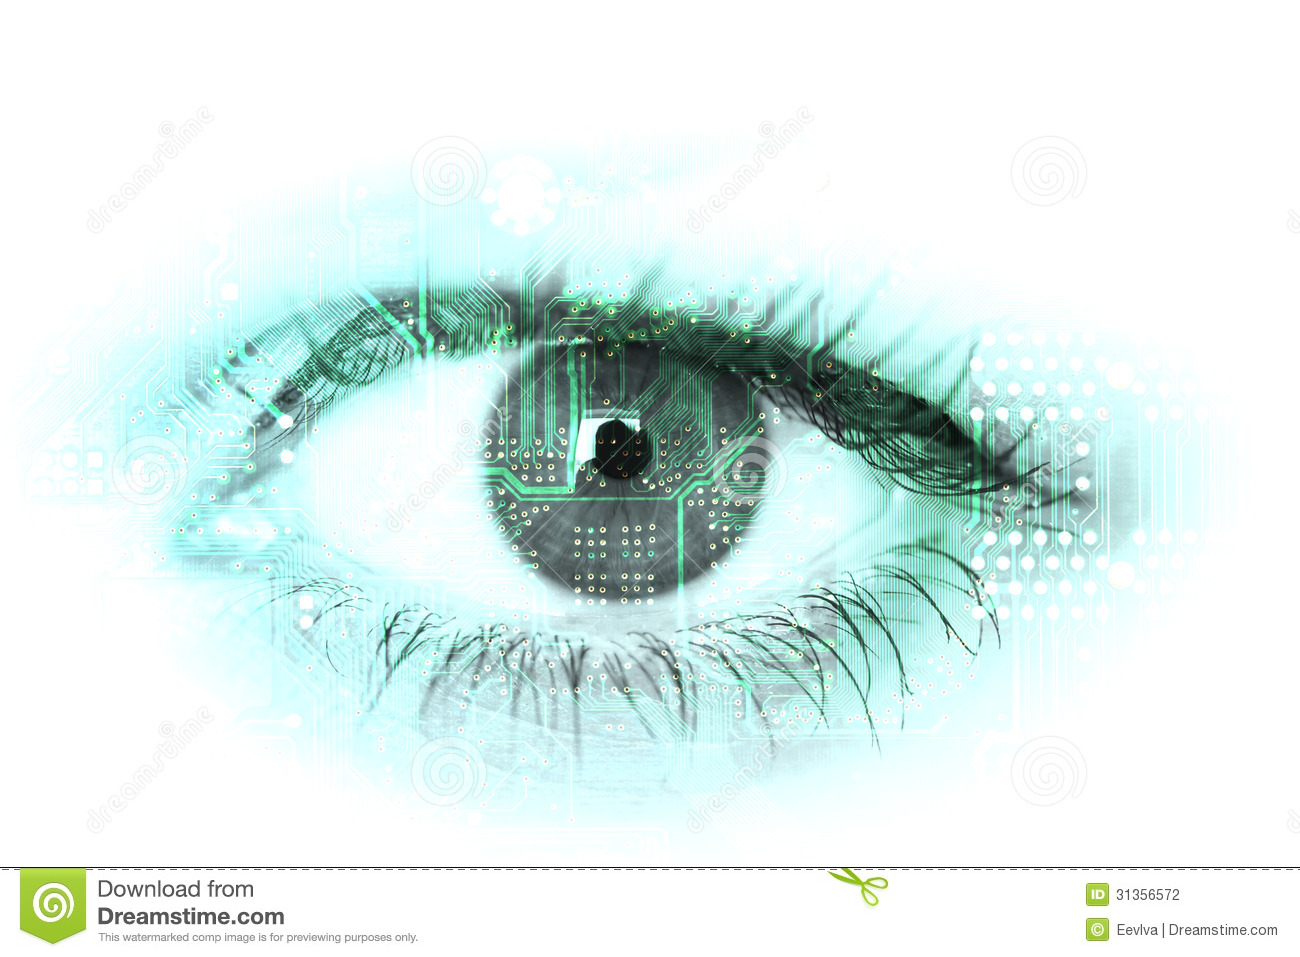 Circuit Board Eye Best Secret Wiring Diagram Pics Photos Desktop Wallpapers Printed Pictures Human With Stock Photo Image Of Concept Rh Dreamstime Com Wallpaper Background